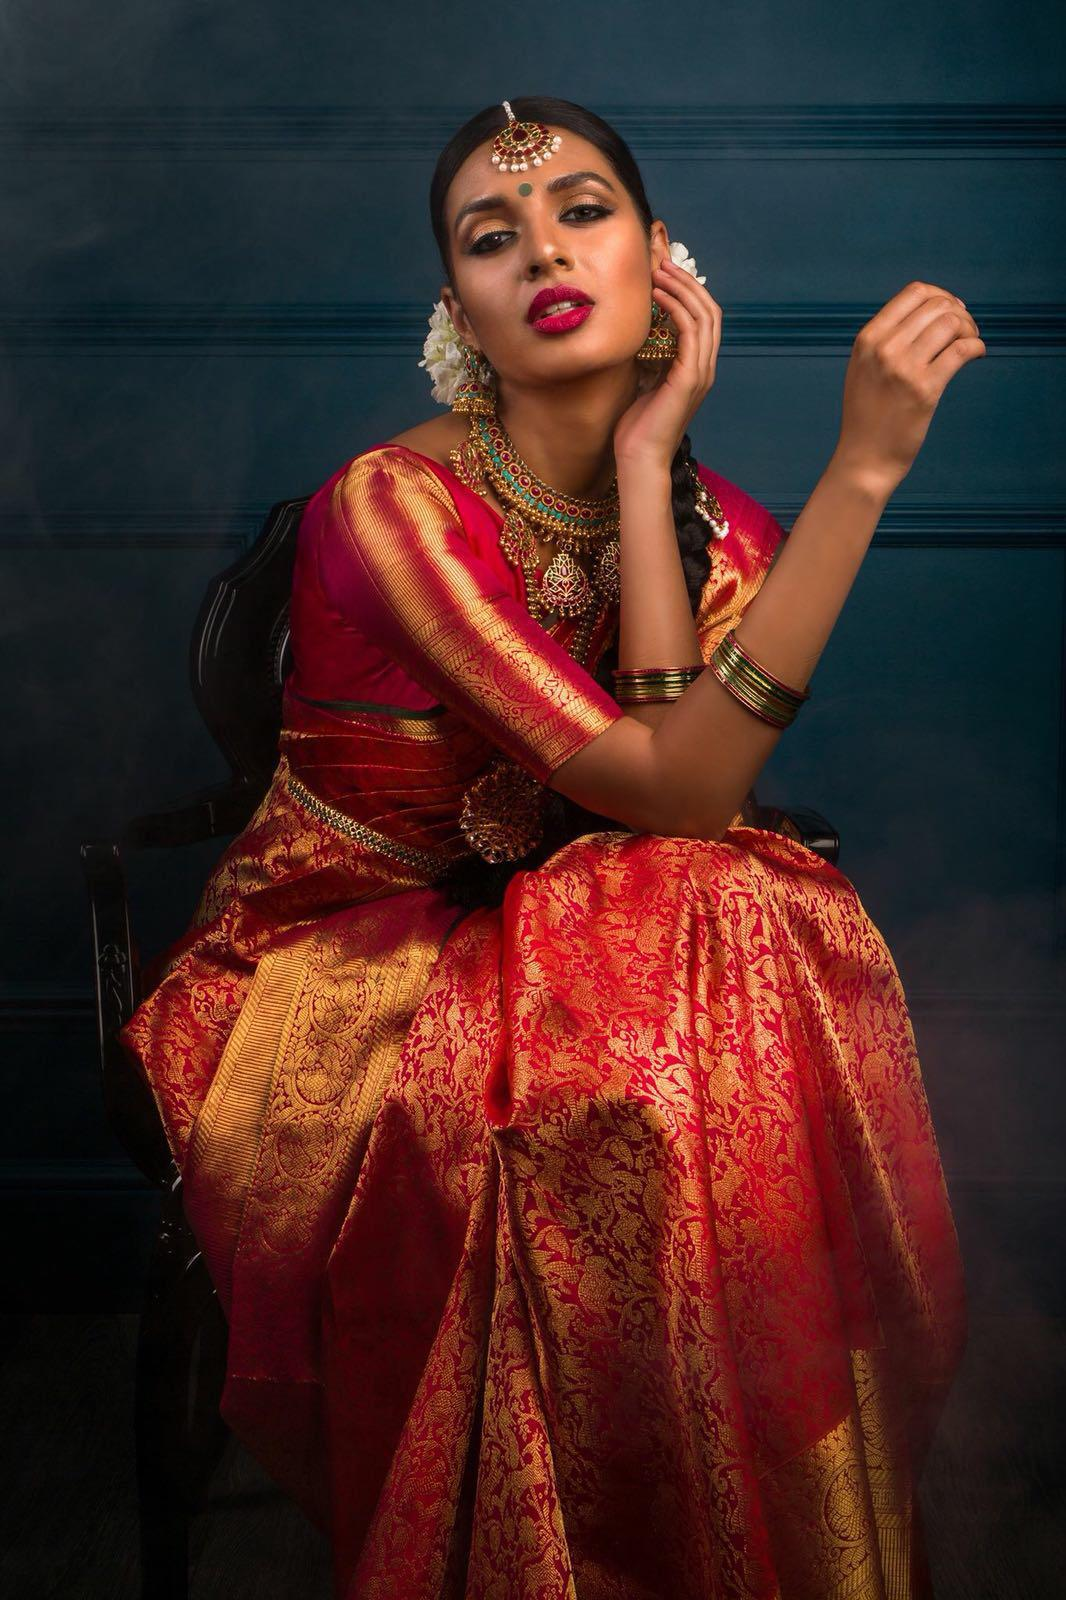 tomato red bridal saree.jpg